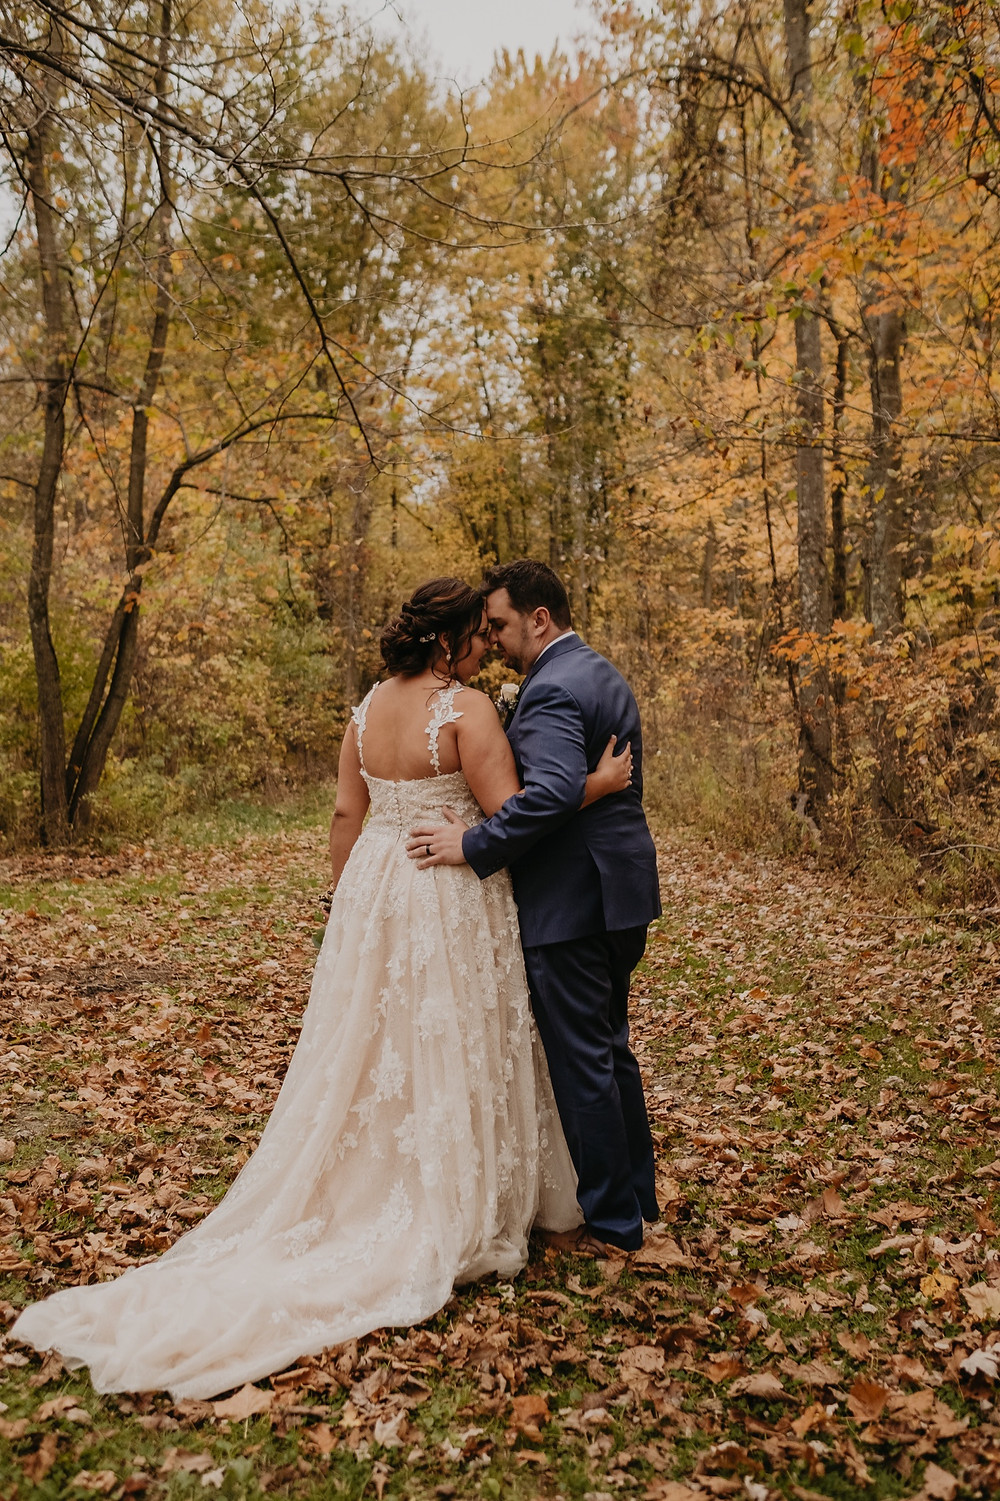 Fall wedding photos in Michigan with bride and groom